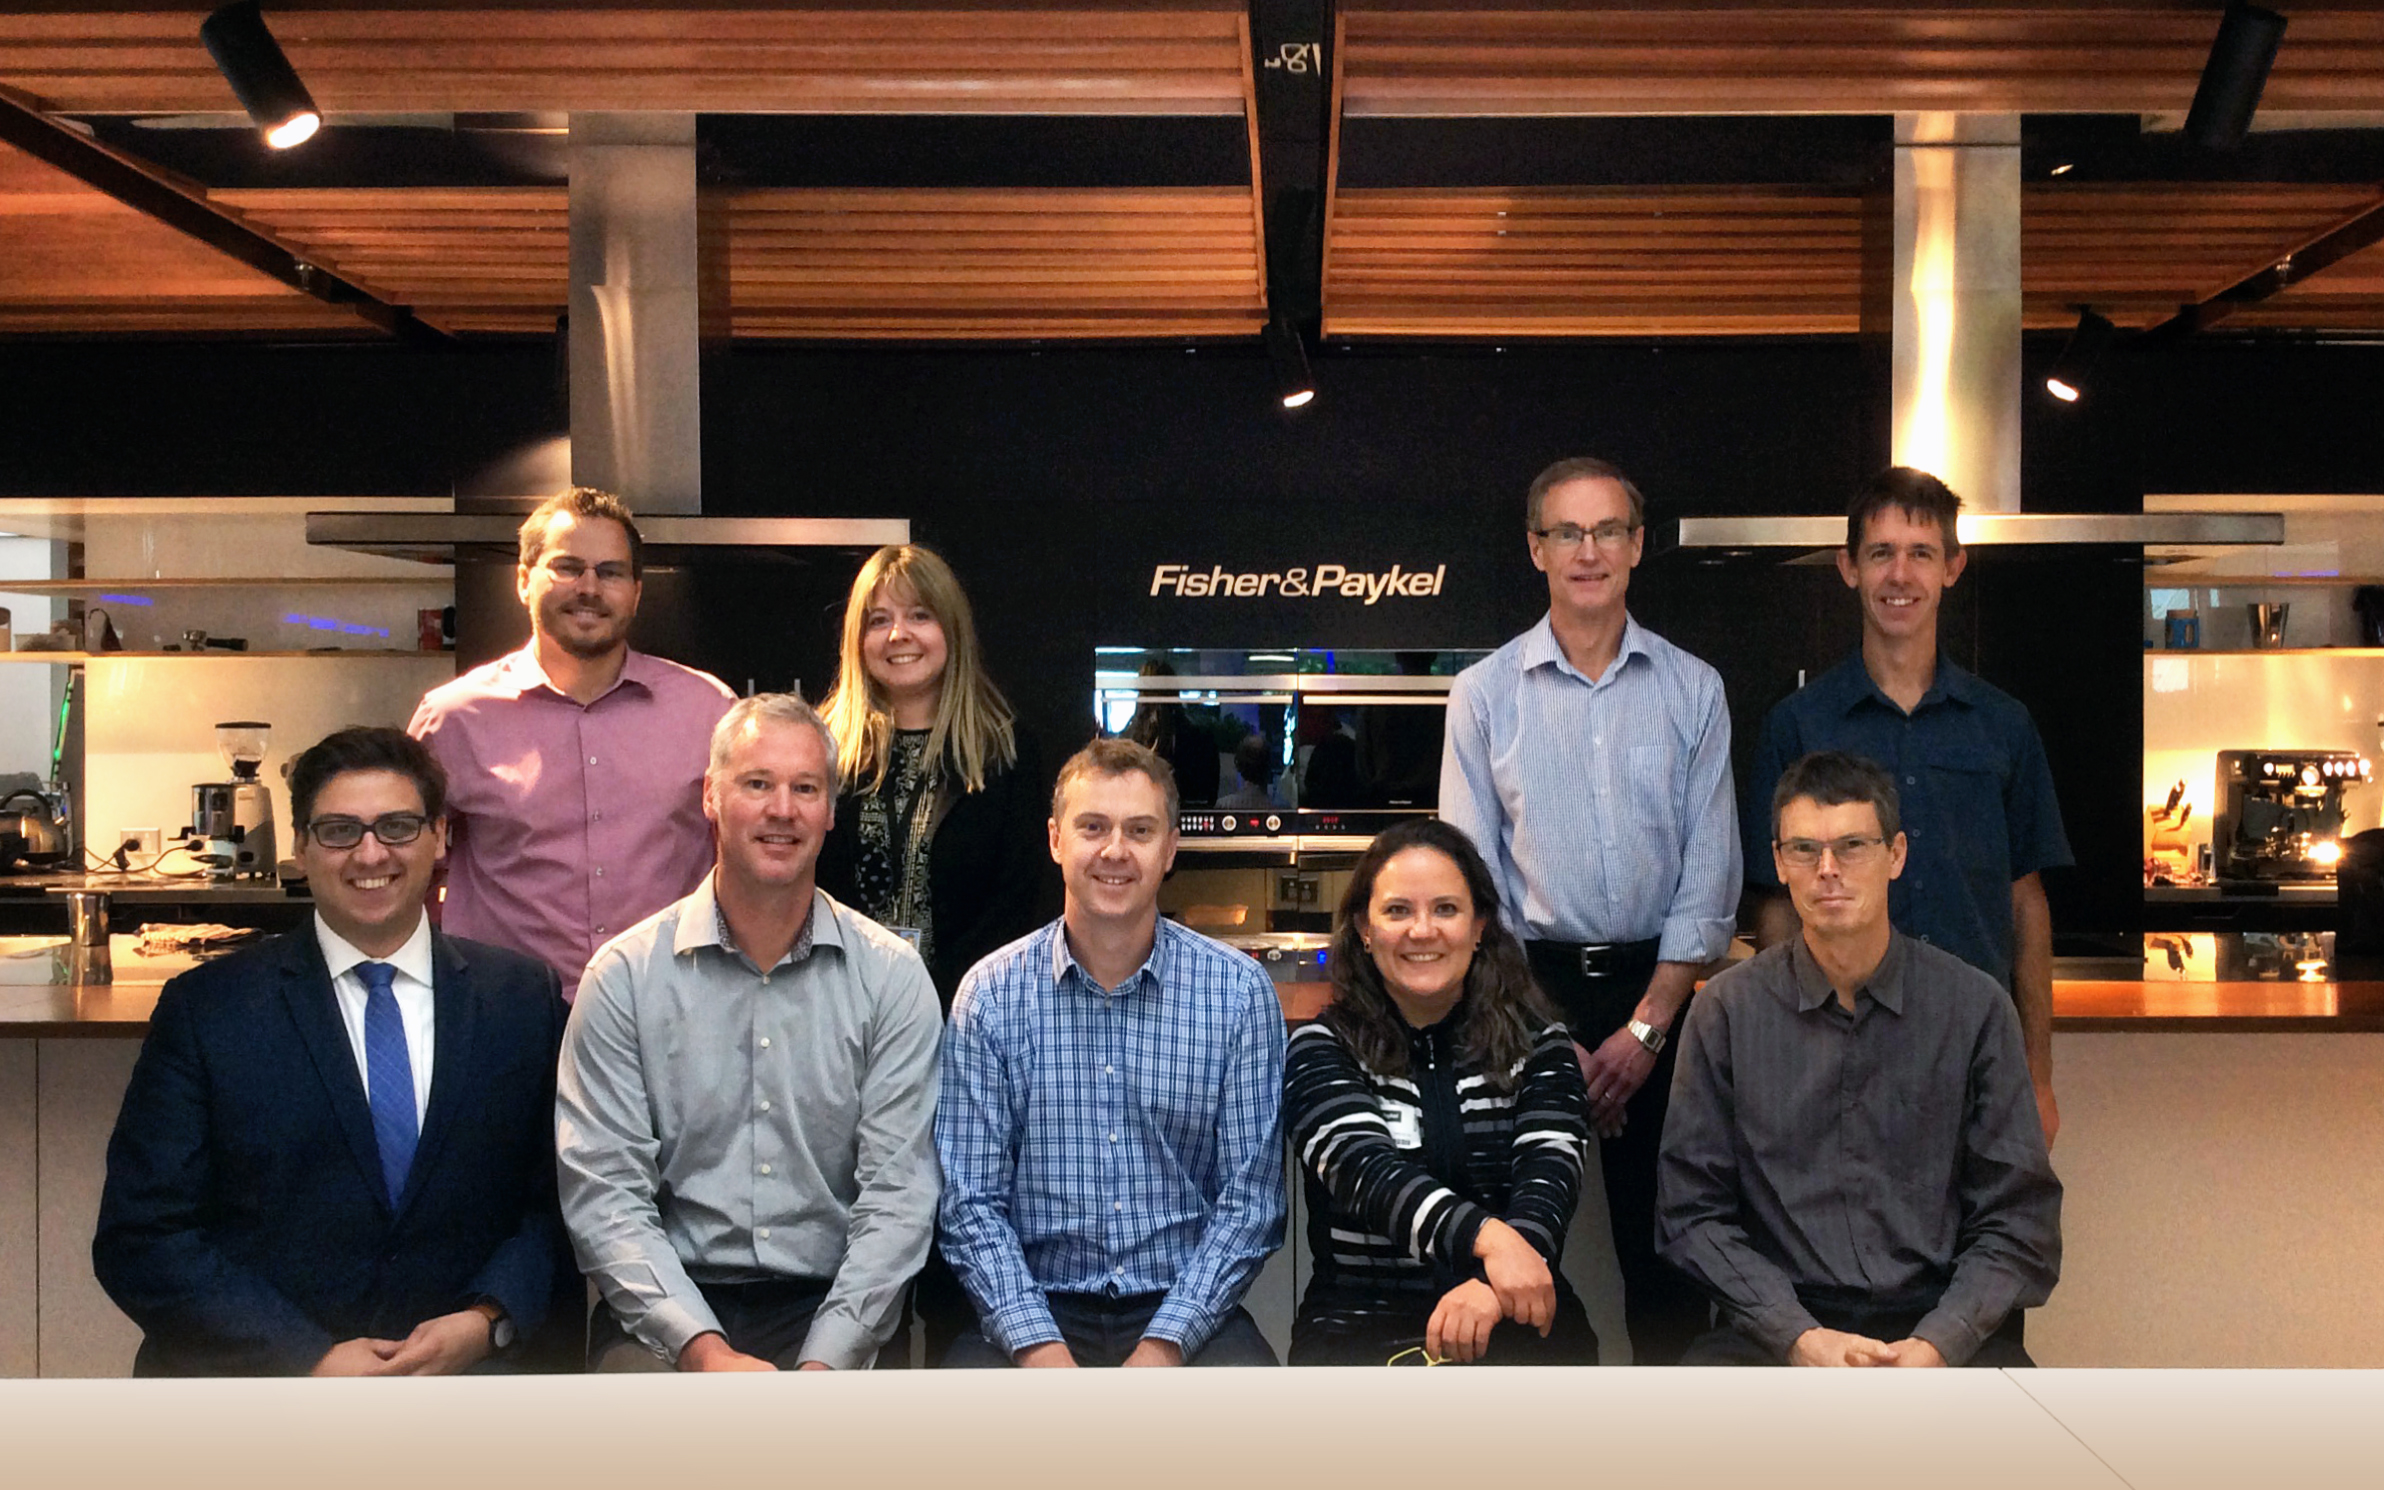 LAA in Fisher & Paykel - Group Photo